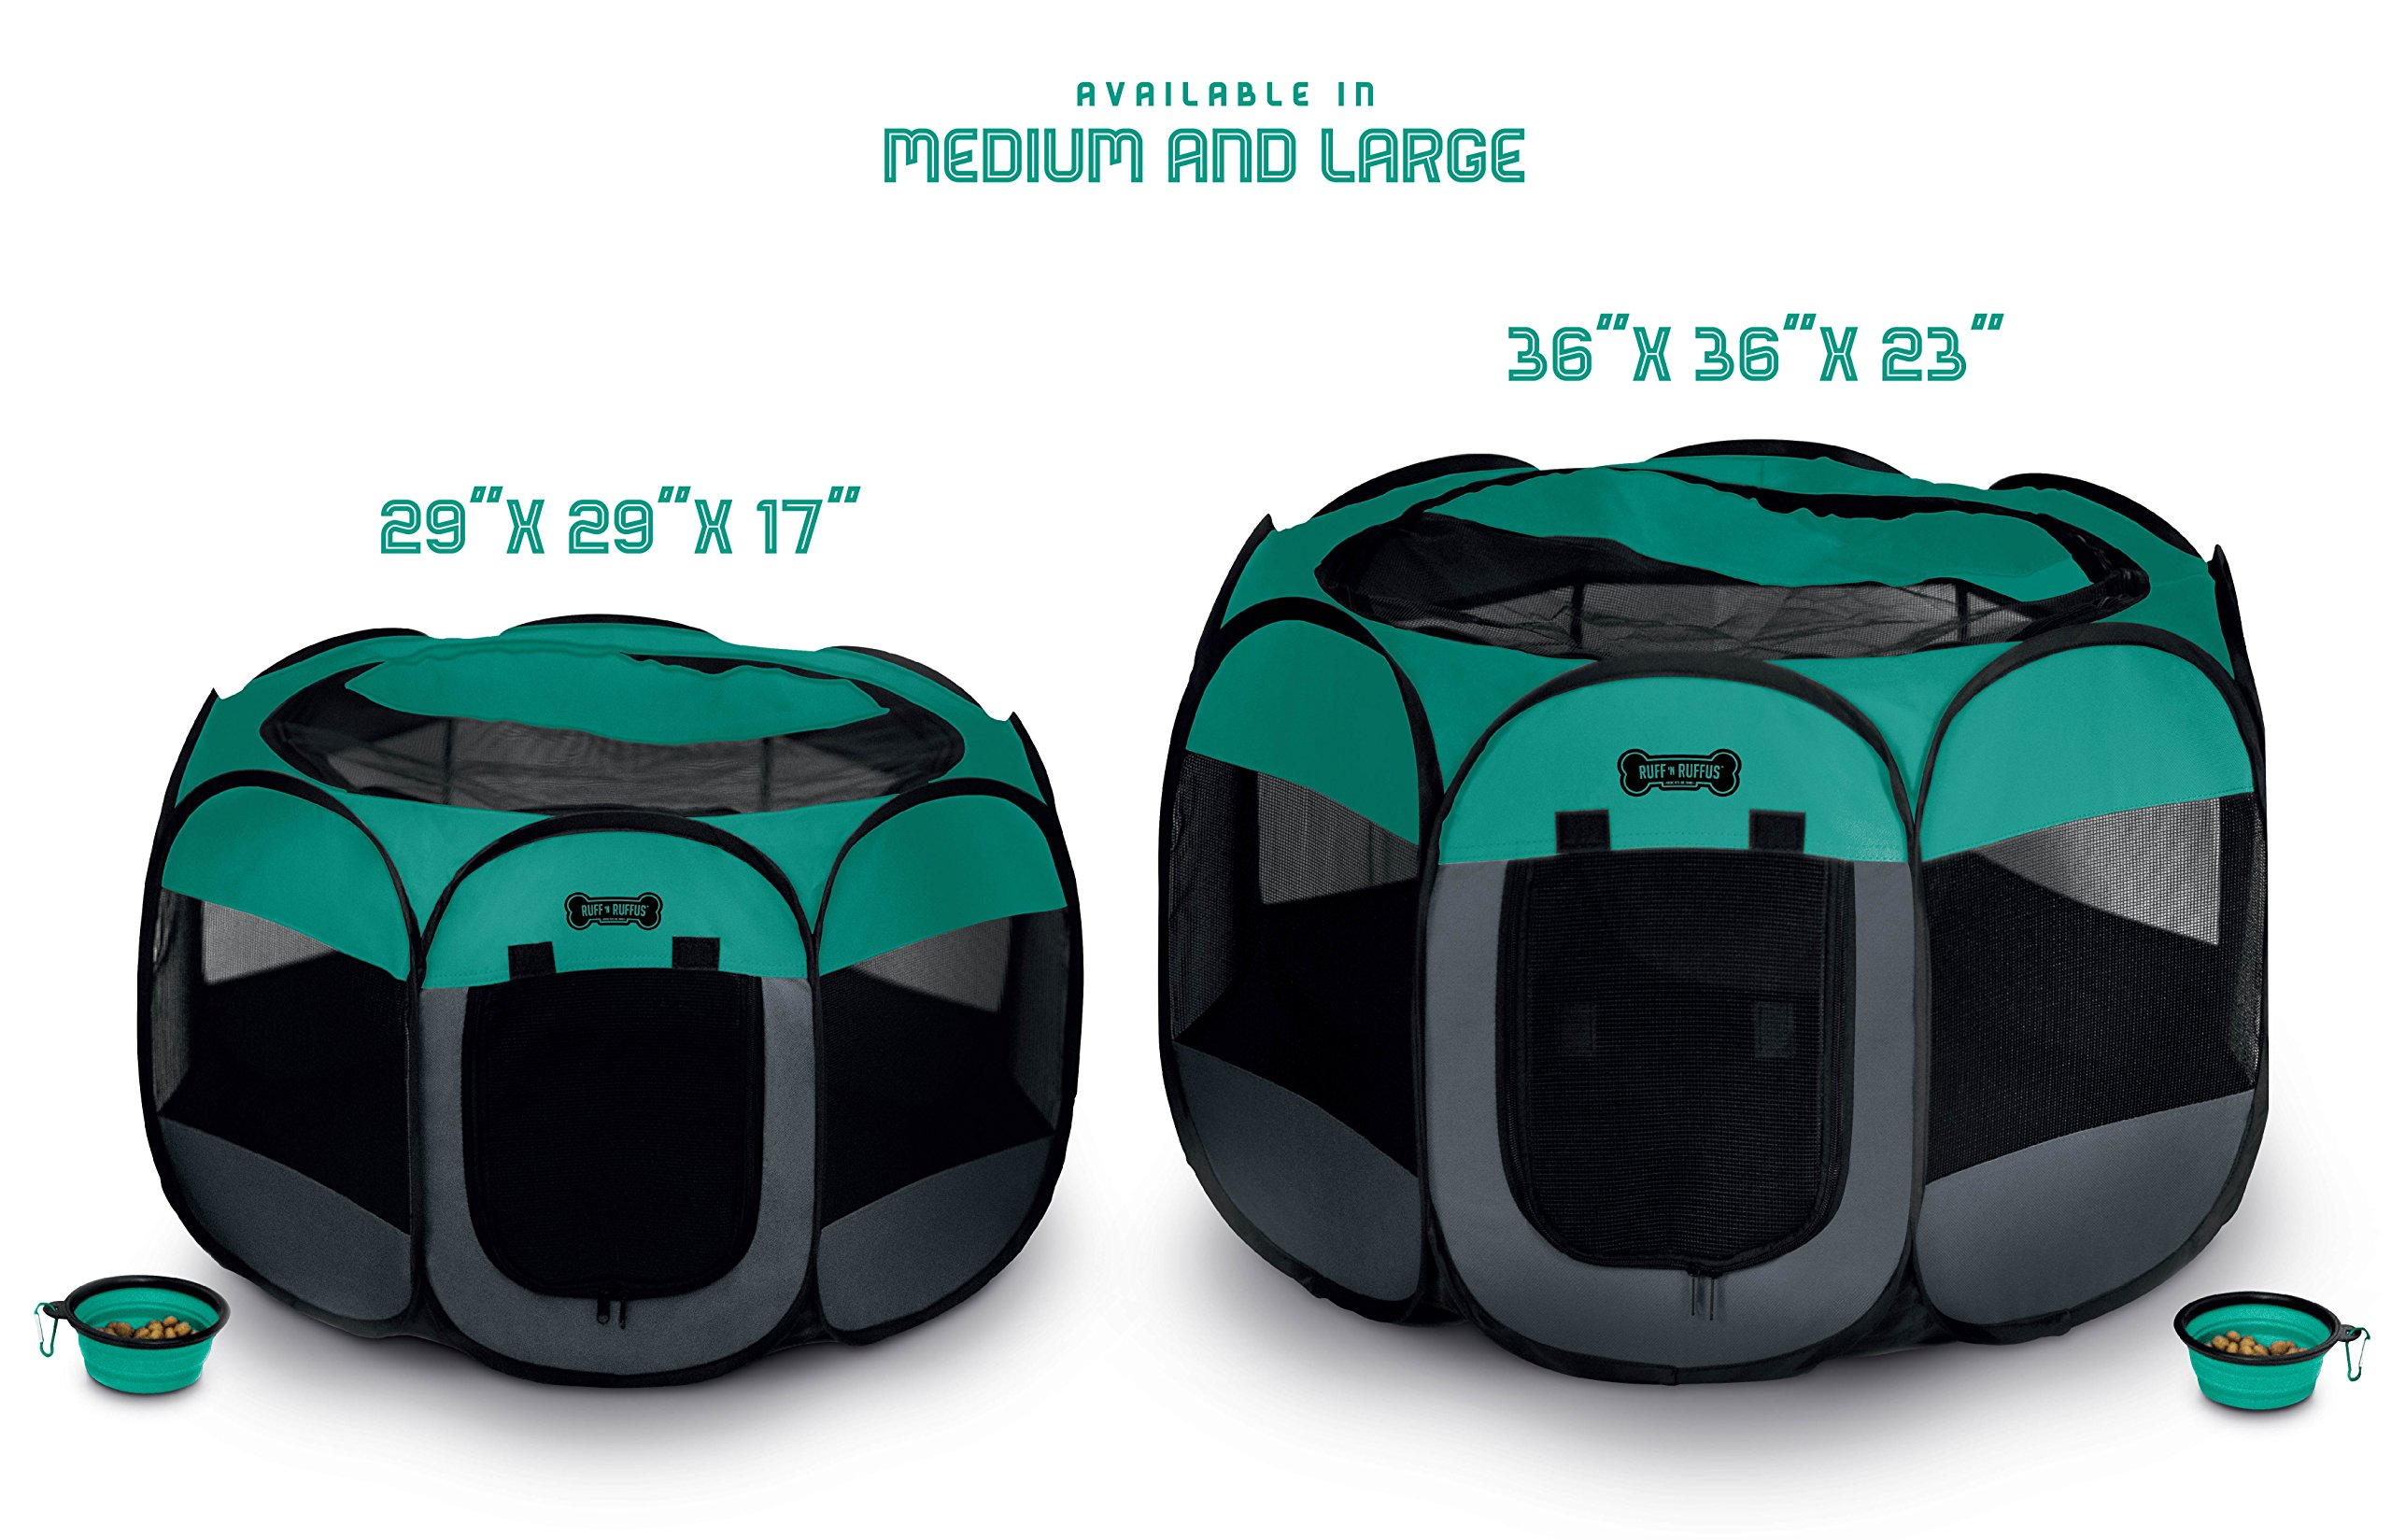 Ruff 'n Ruffus Portable Foldable Pet Playpen with Carrying Case & Collapsible Travel Bowl | Indoor / Outdoor use | Water resistant | Removable shade cover | Dogs / Cats / Rabbit | Available In 2 Sizes by Unleashed (Image #3)